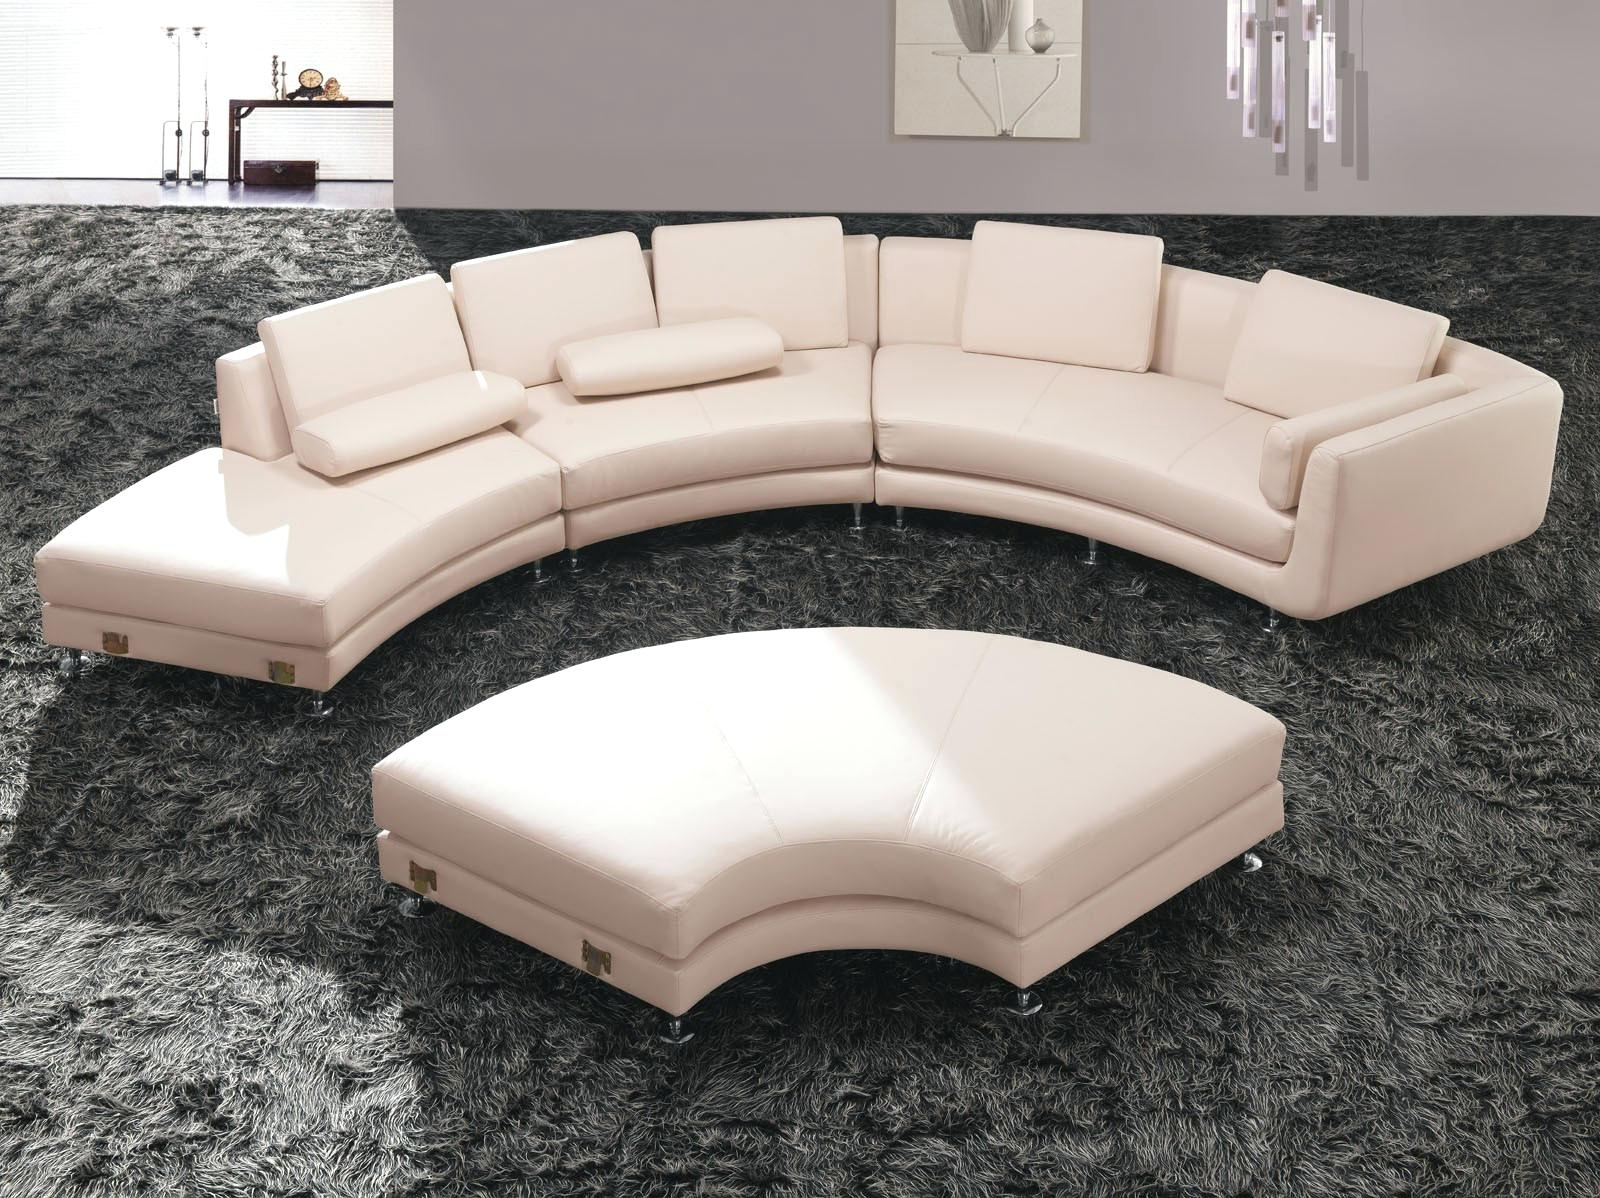 Trendy Vancouver Wa Sectional Sofas For Furniture : 55 Sectional Sofa Sectional Couch Delivery Recliner (View 9 of 20)